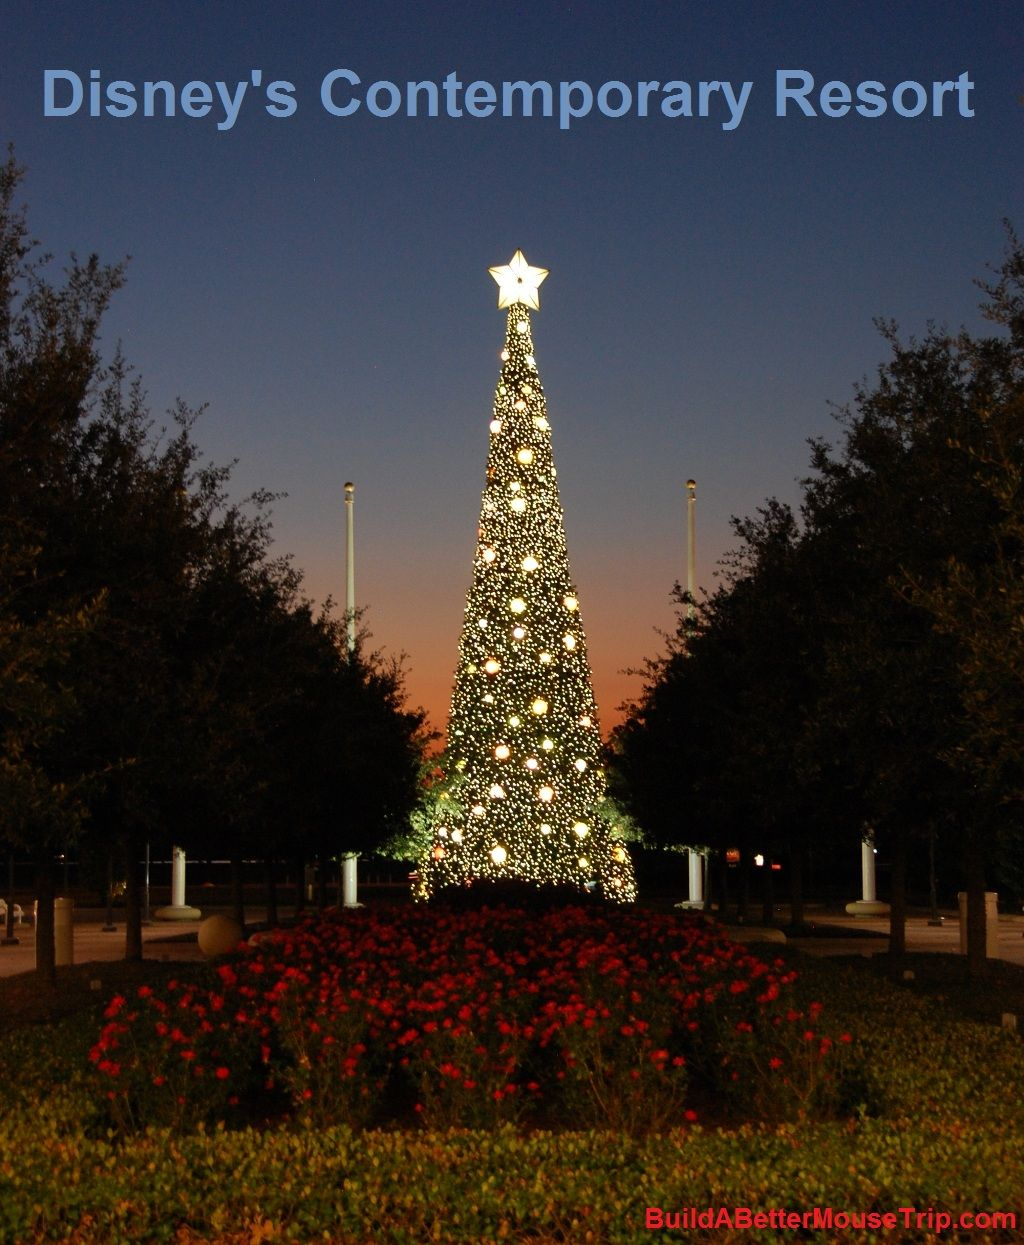 The Christmas Tree outside Disney's Contemporary Resort